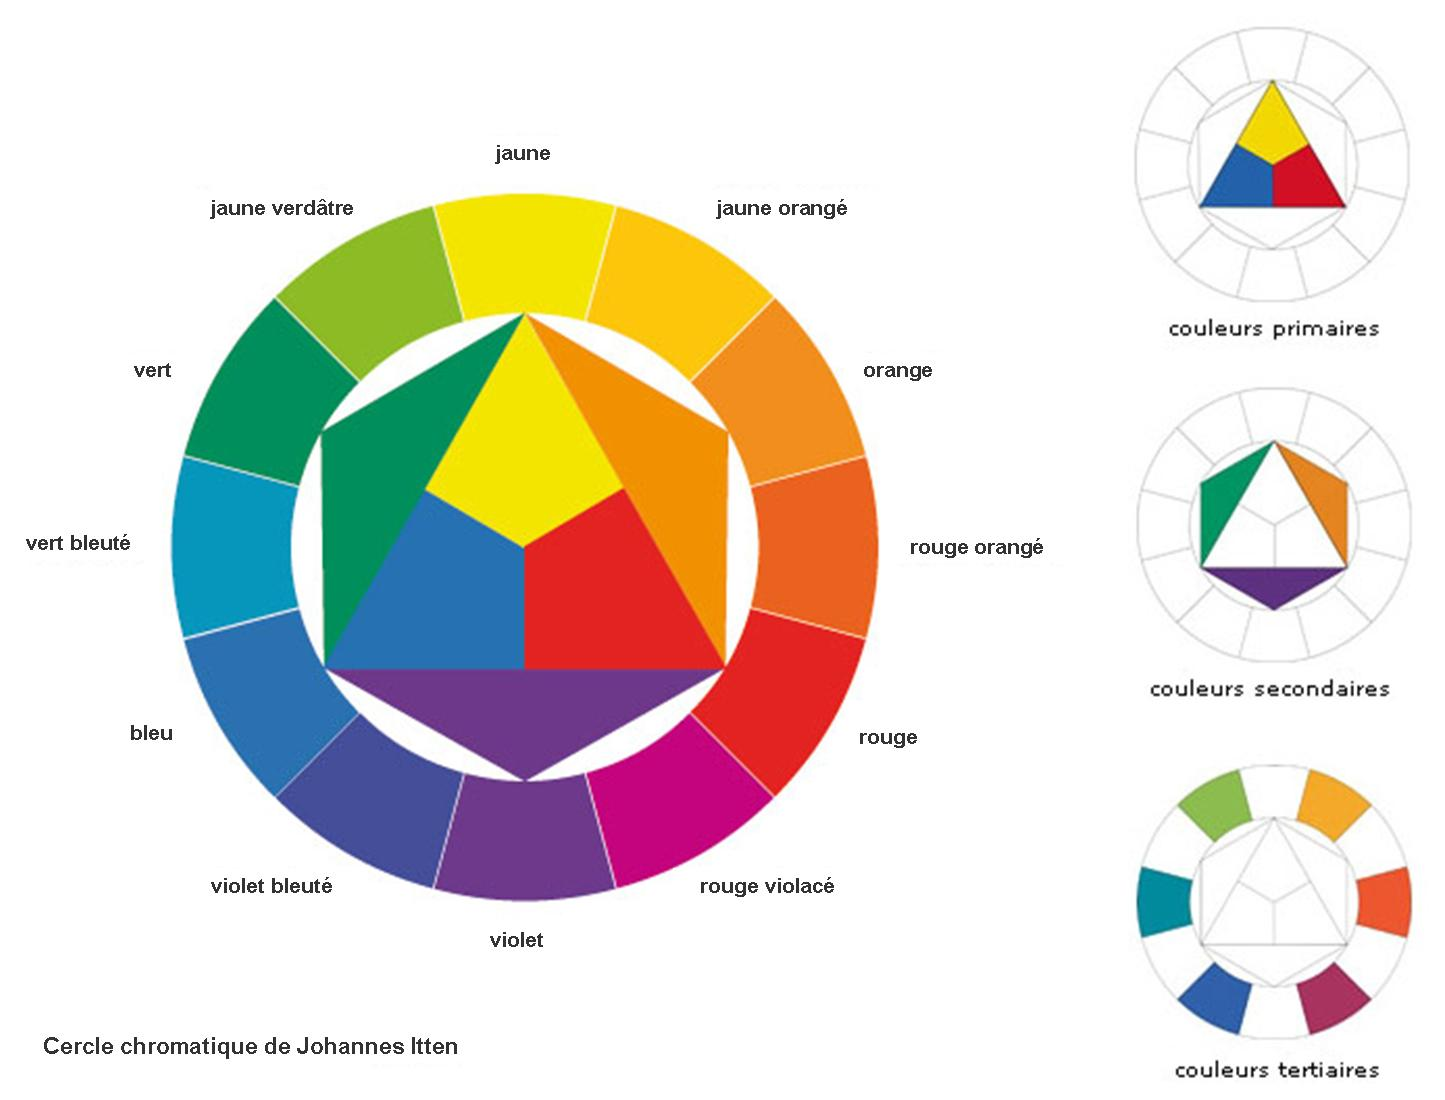 cercle-chromatique-johannes-itten